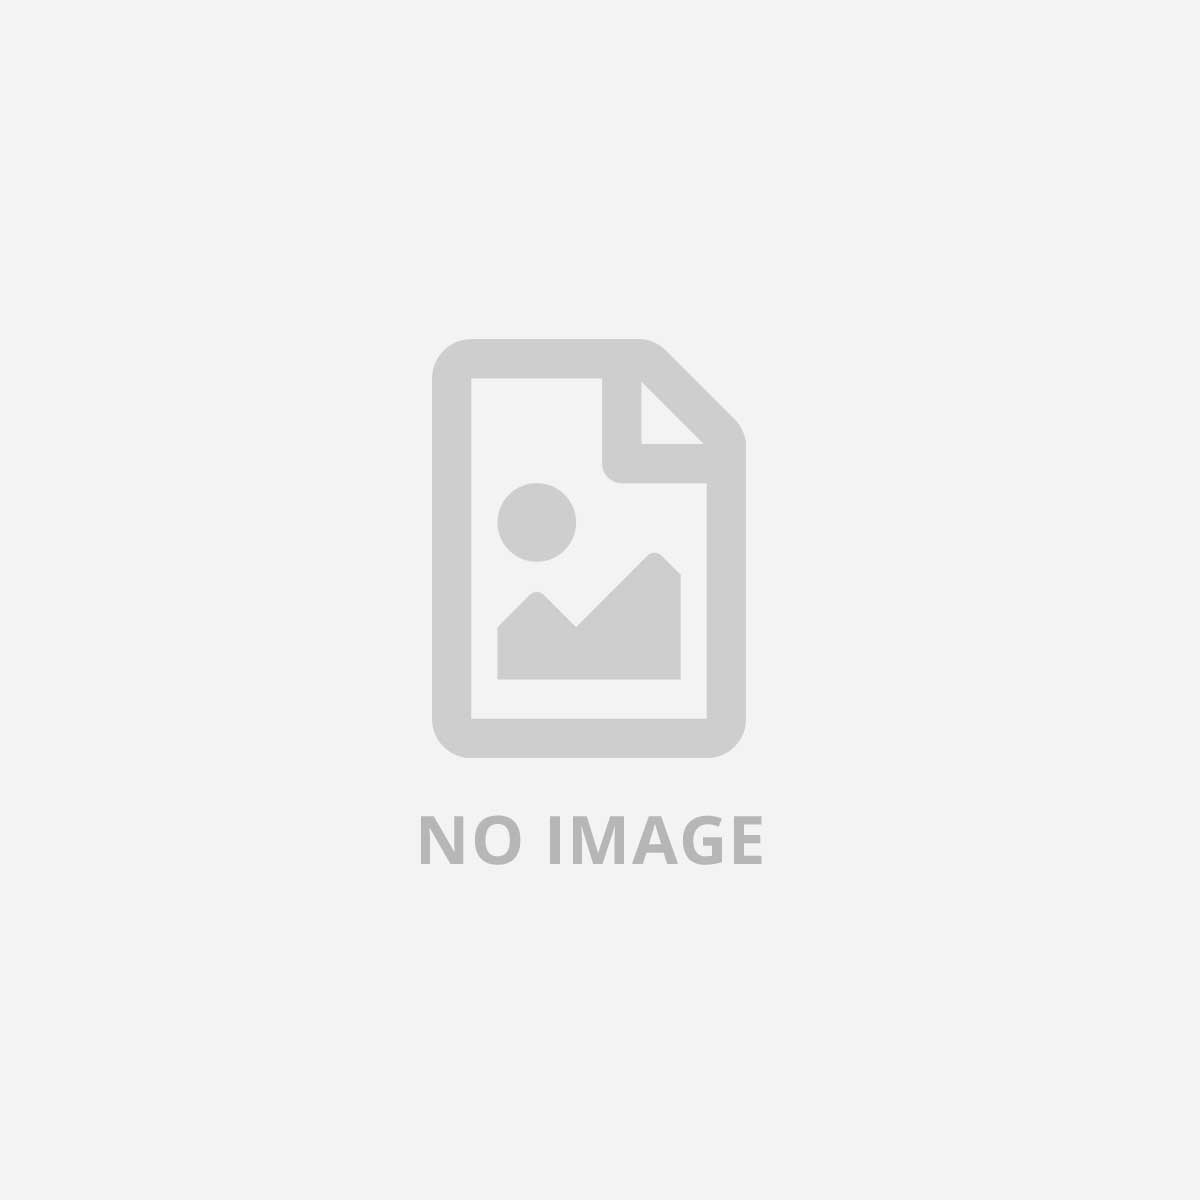 TRANSCEND 2GB MICRO SD CARD ONLY